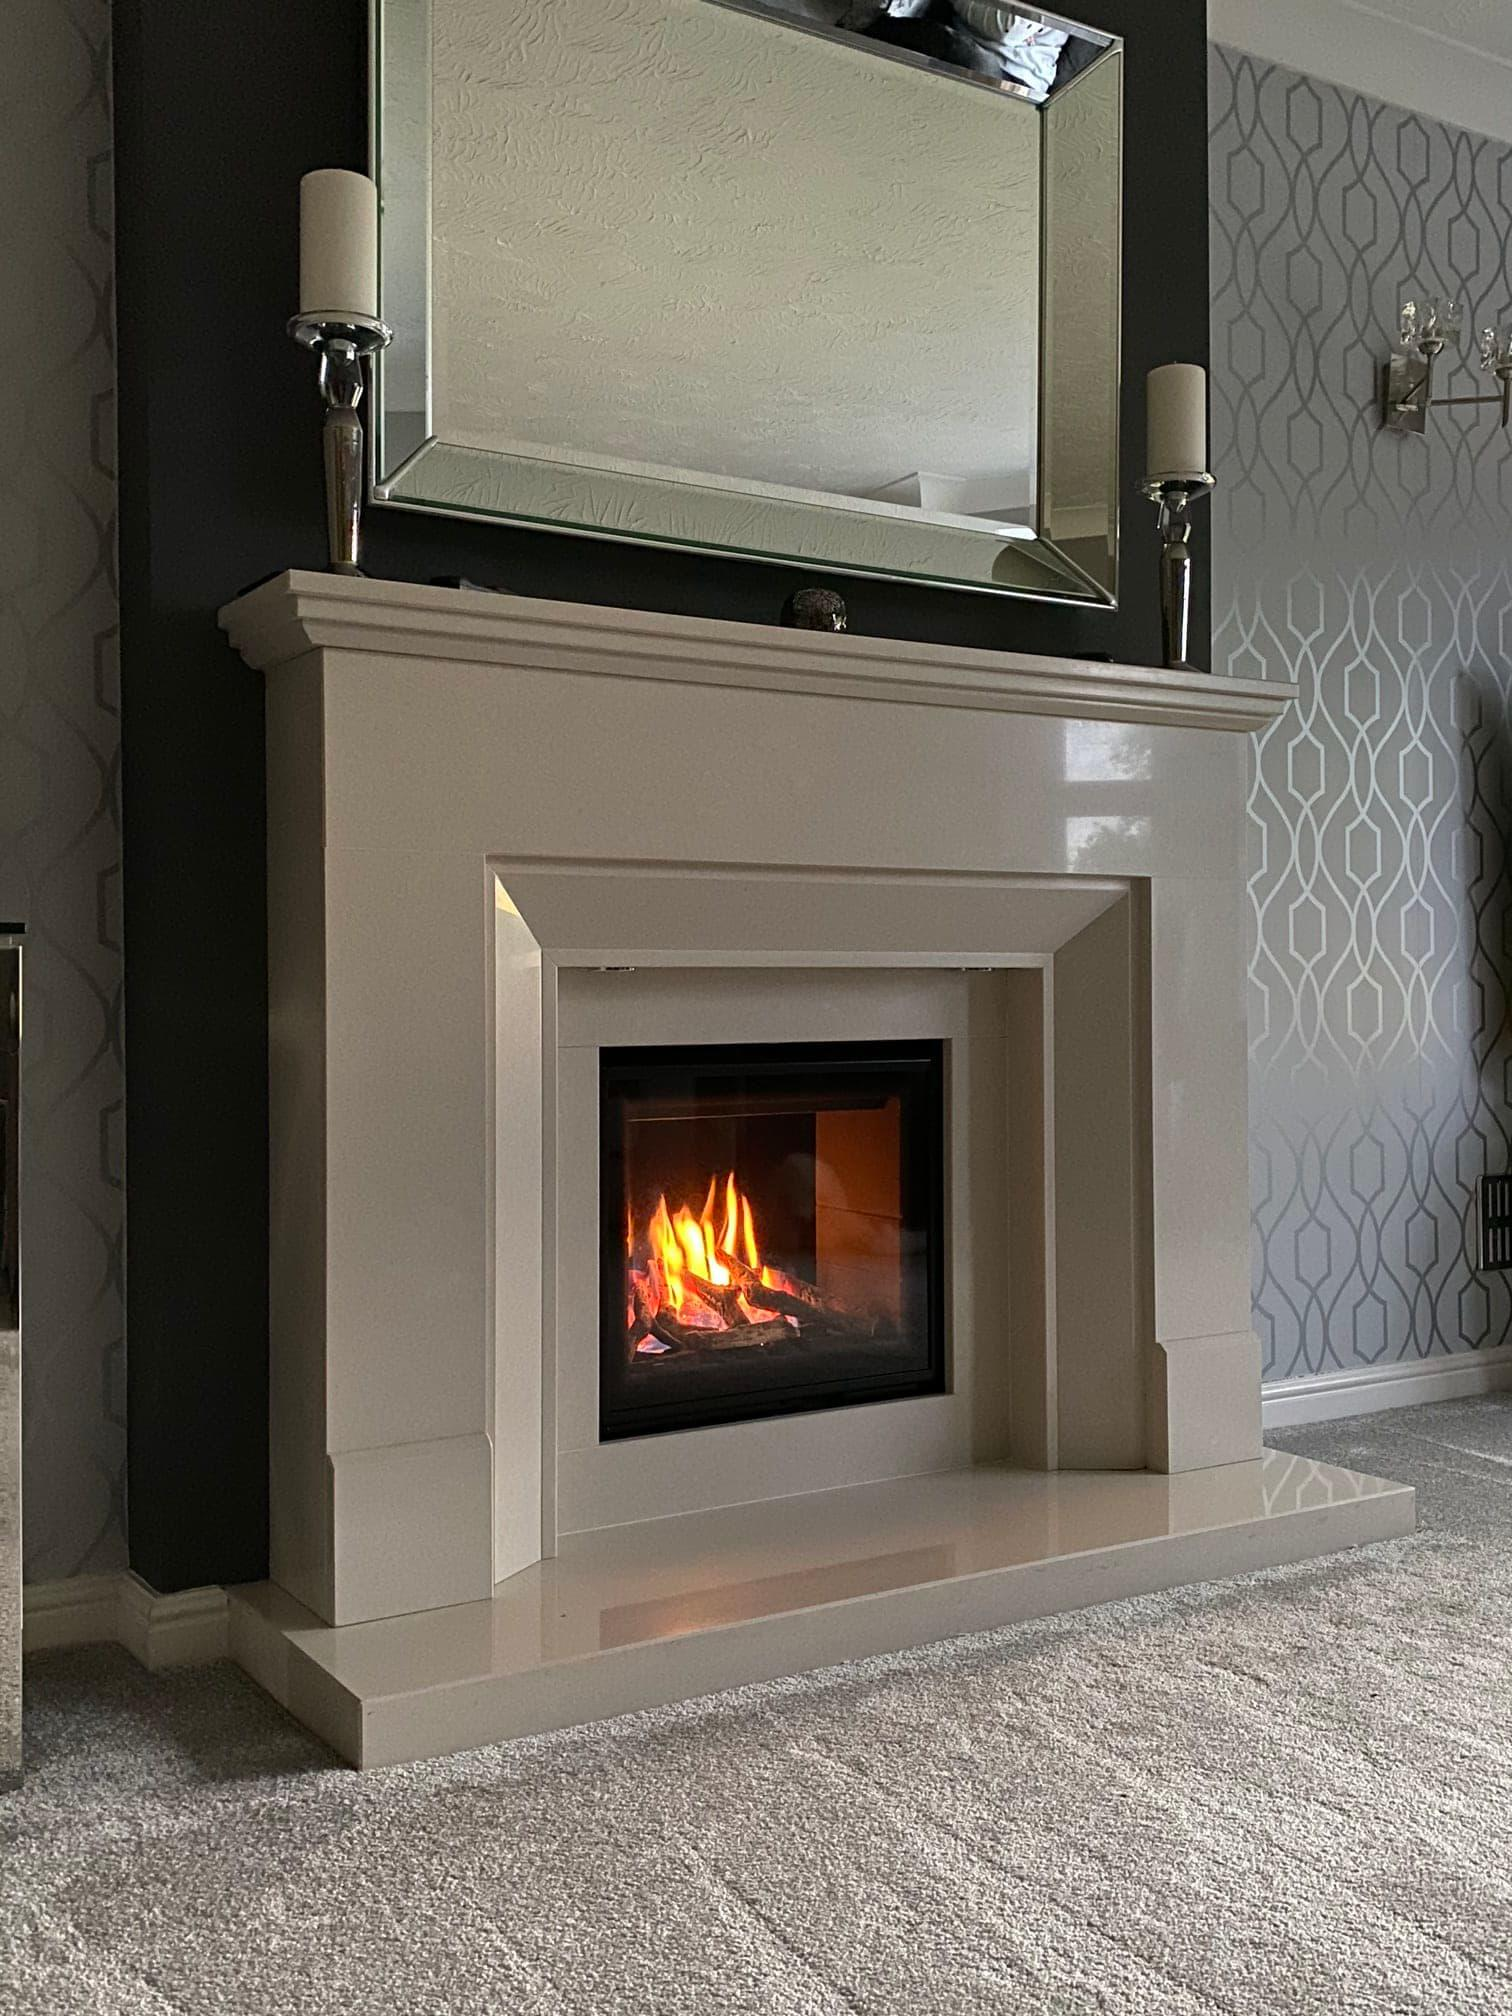 Images Wolverhampton Fireplaces & Stoves Ltd